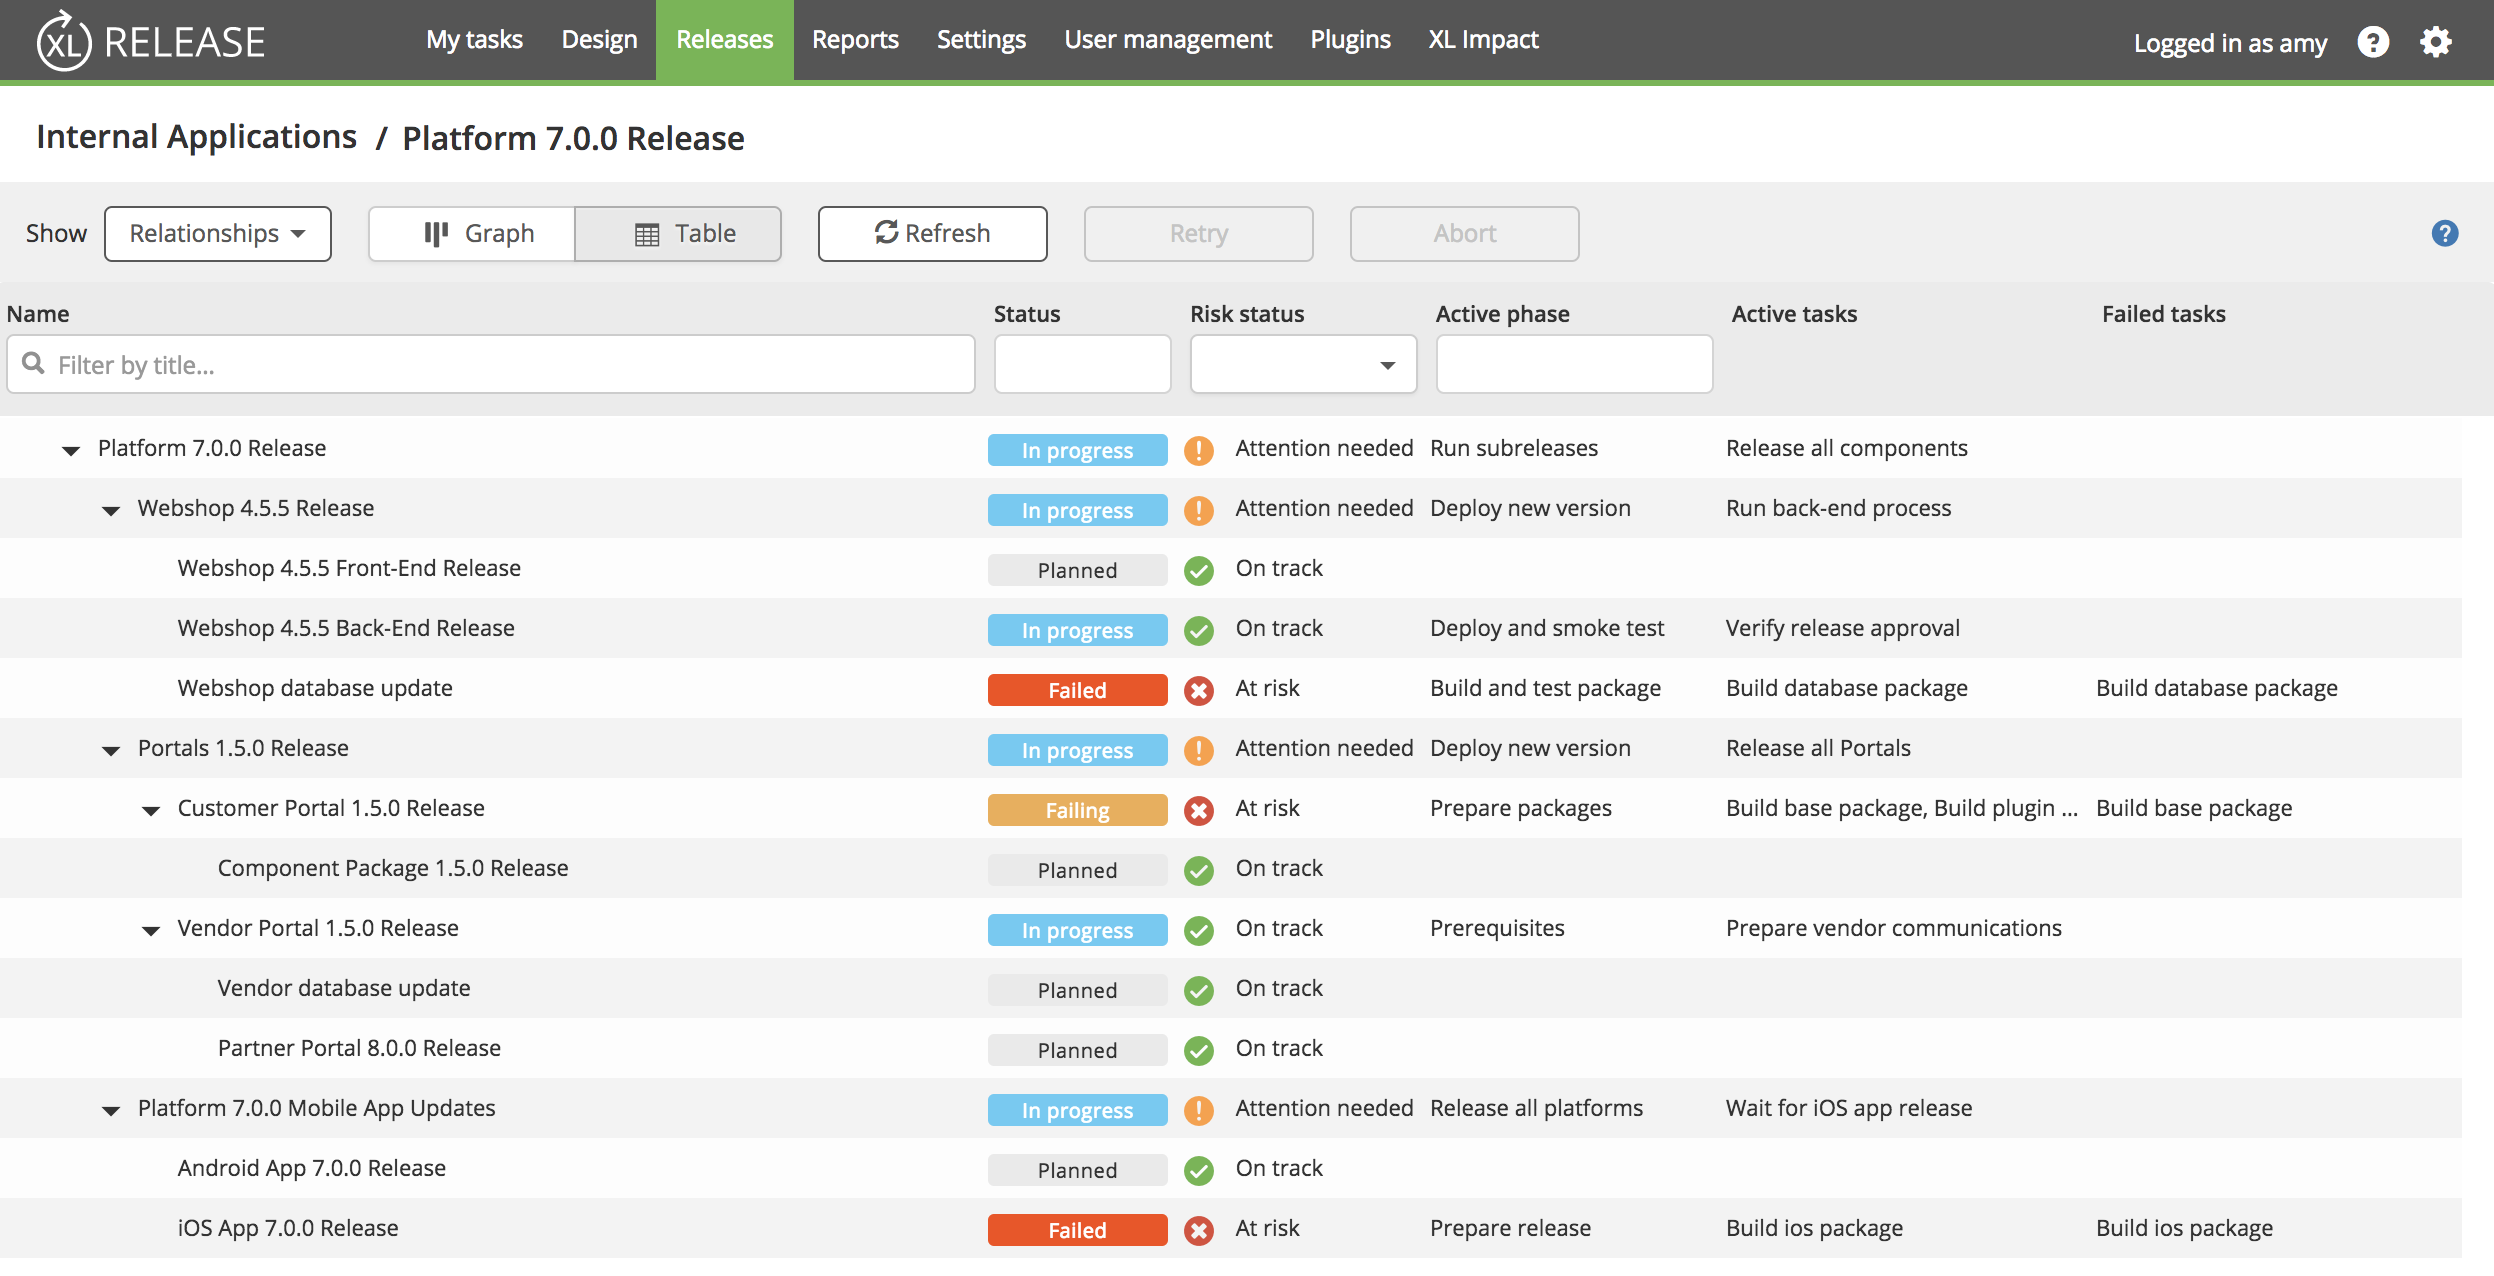 Release Relationship Feature - Table View